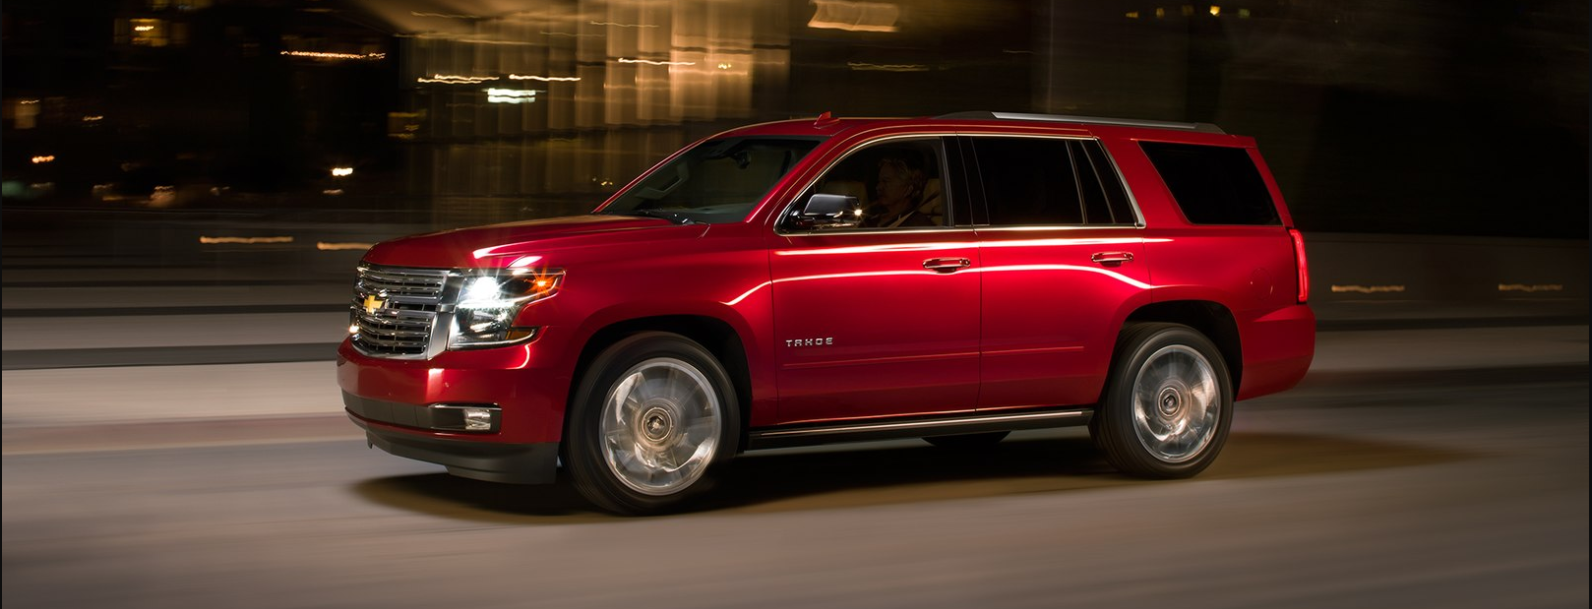 Chevy Tahoe Lease >> Chevy Tahoe Lease Deals Offers Near Lakeville Mn